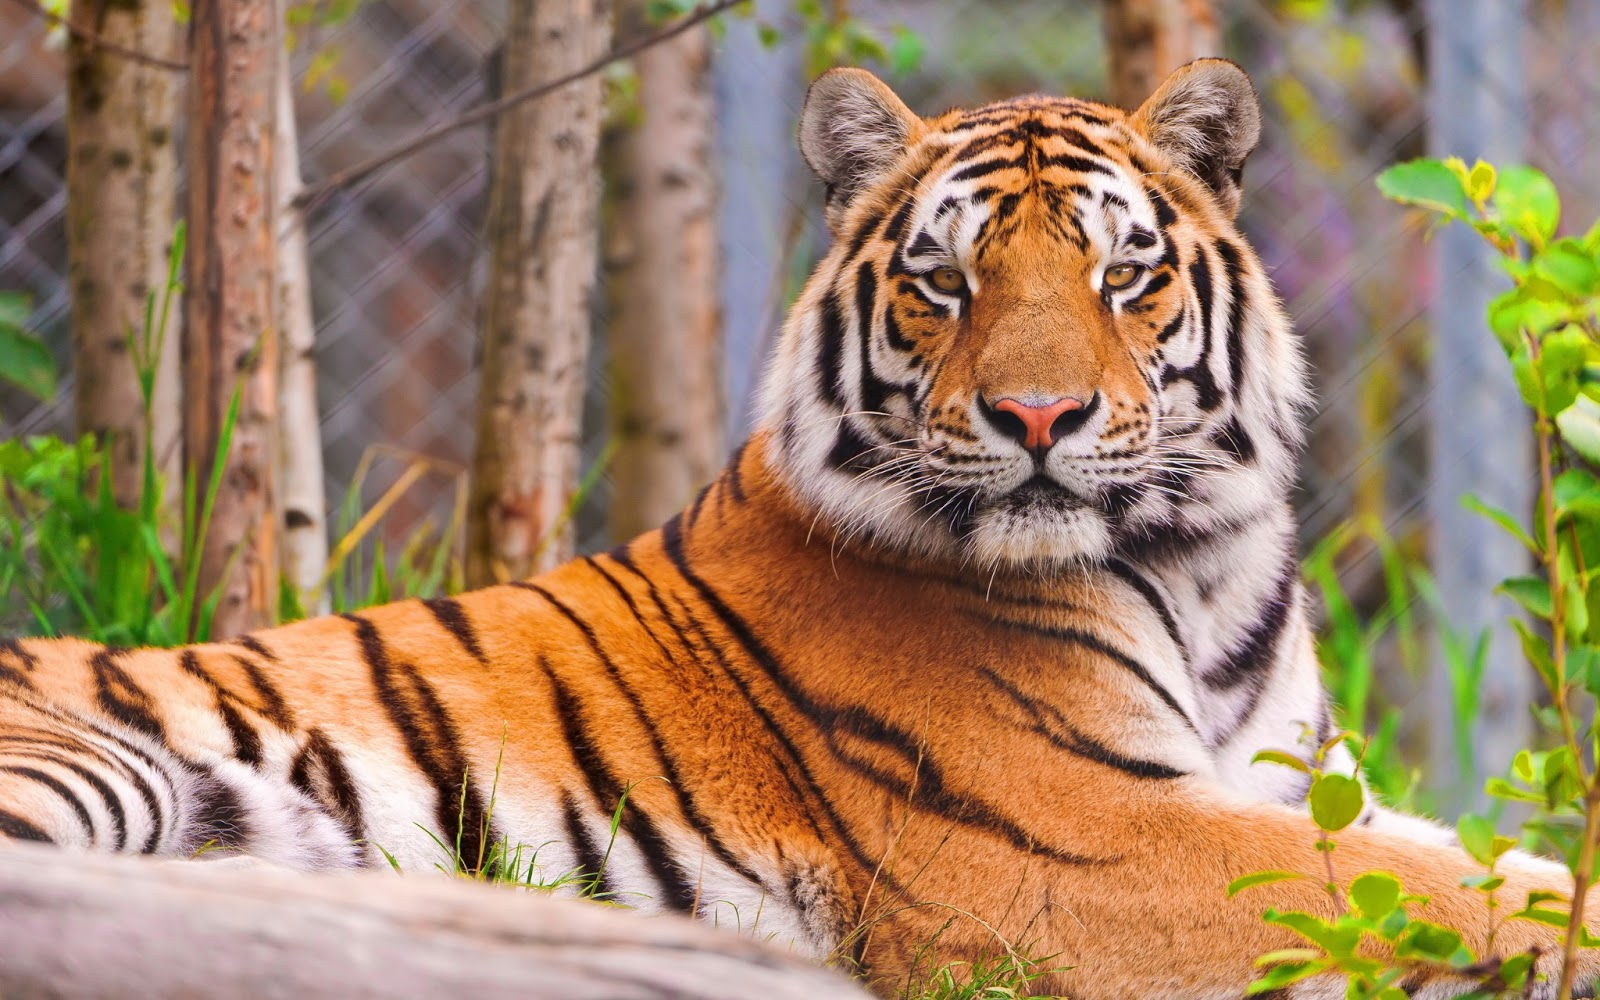 Tiger Pics Wallpapers on